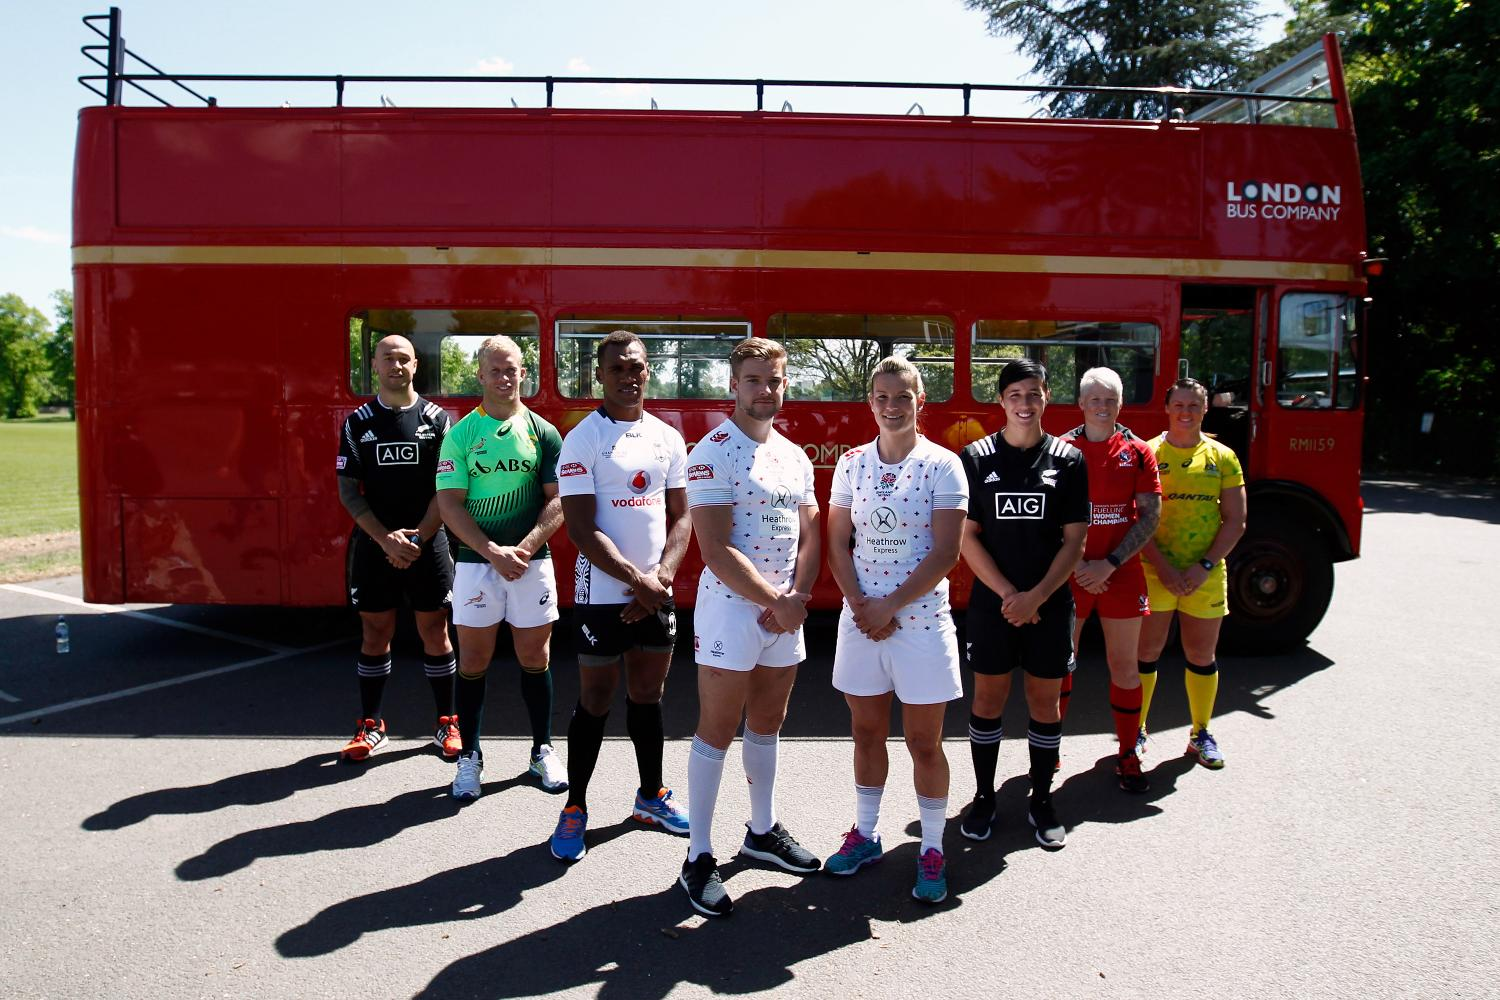 Men's and women's sevens captains pose ahead of the London 7s